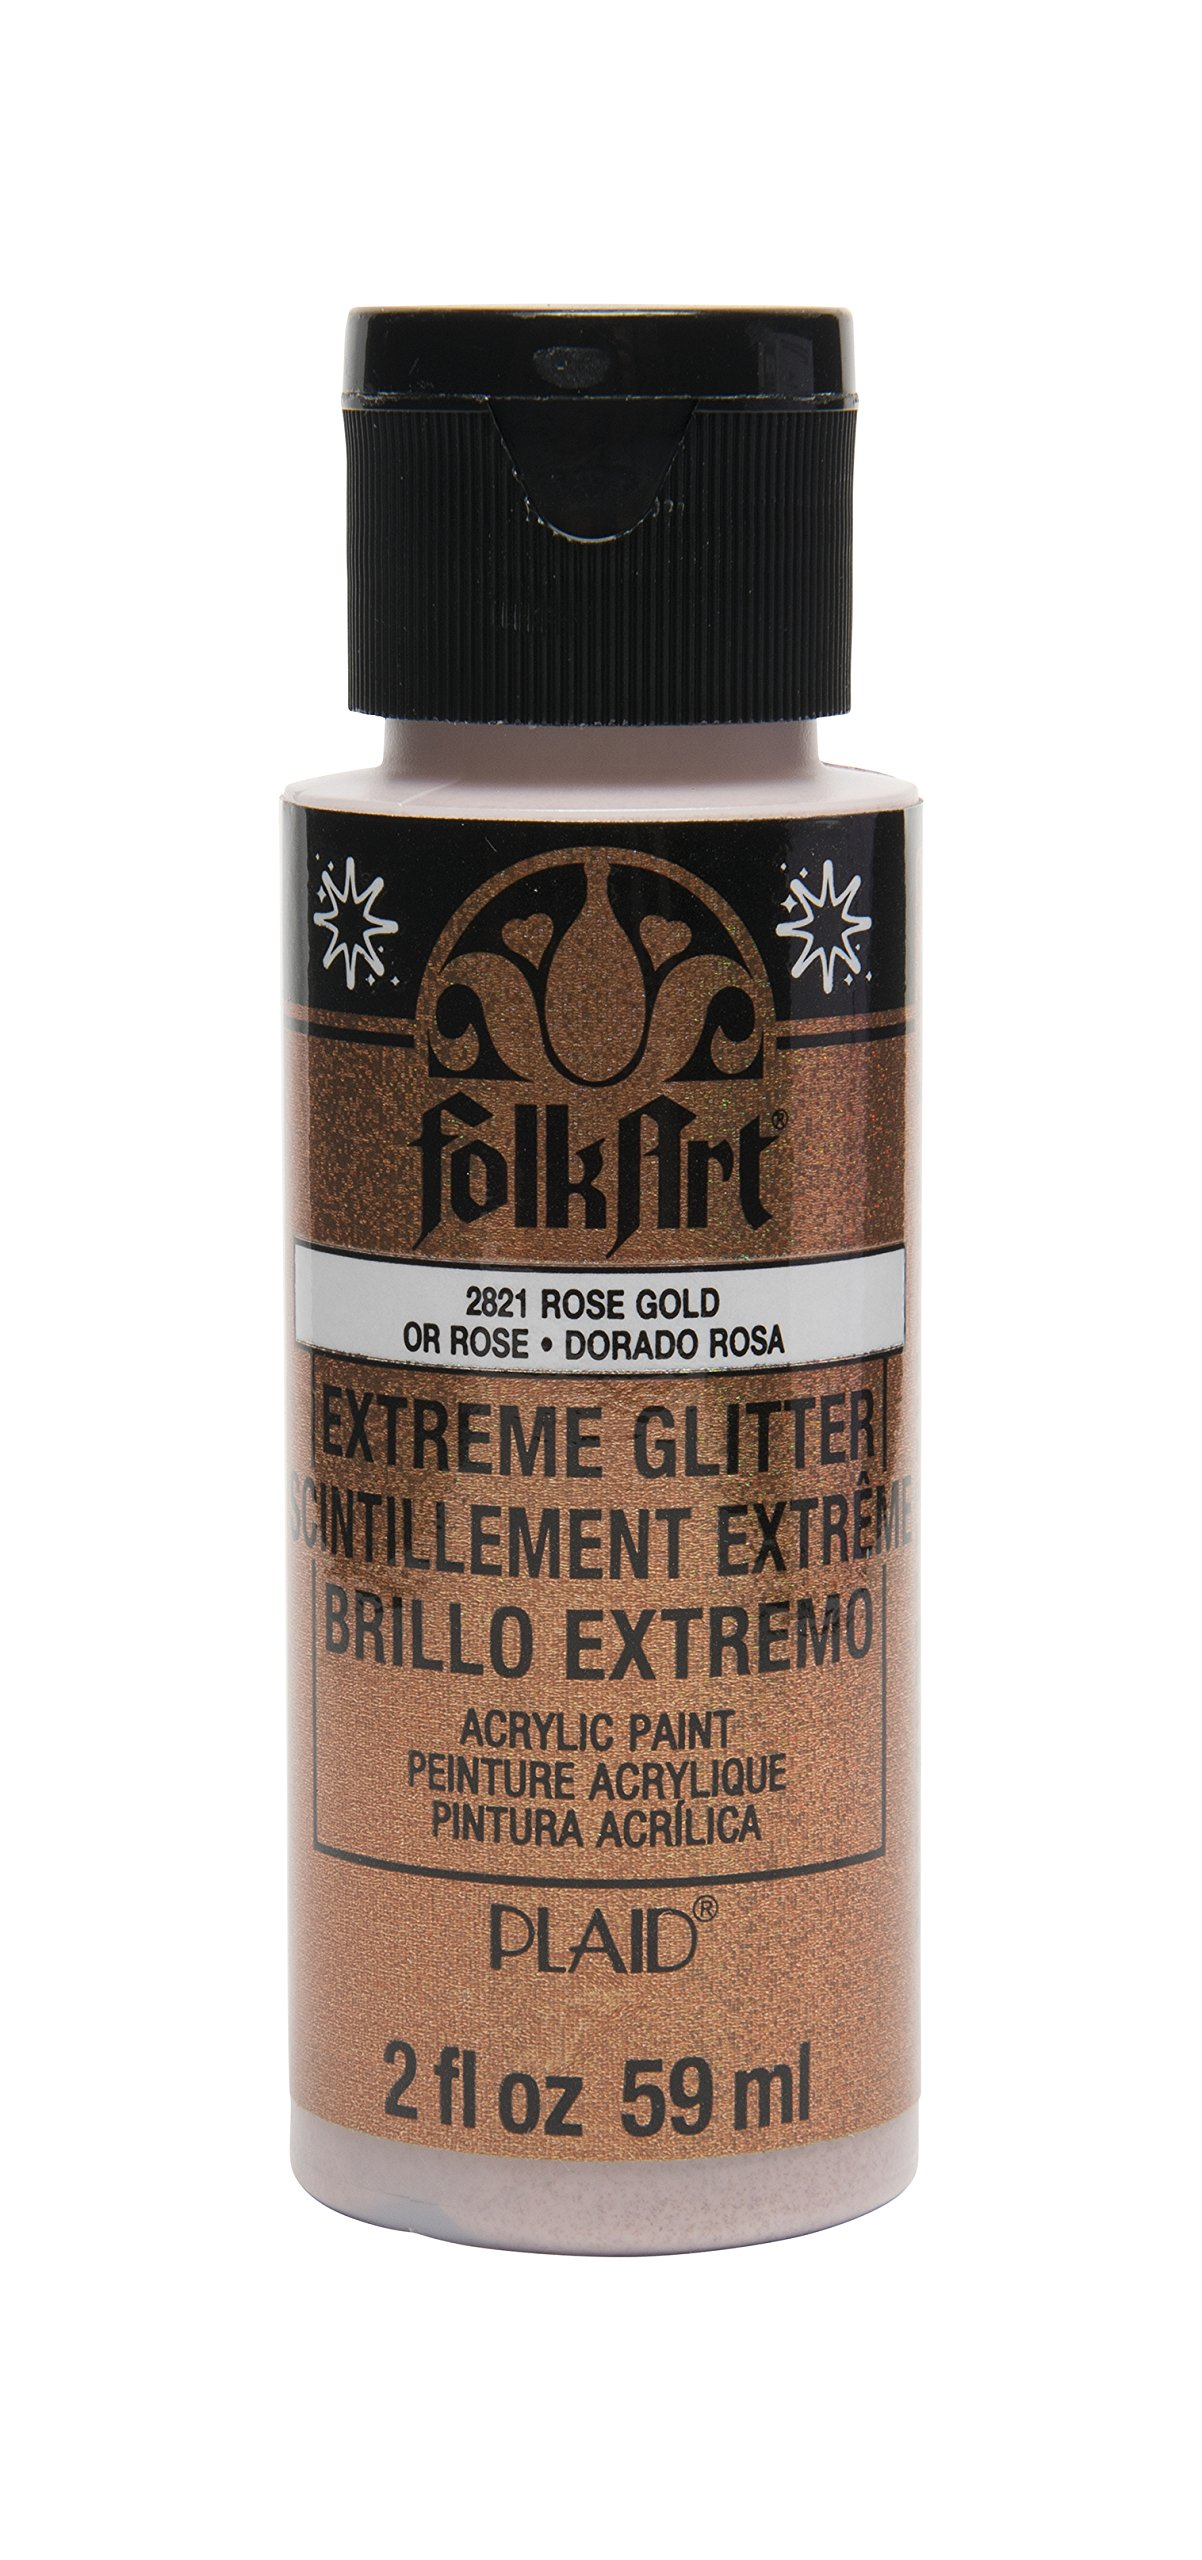 FolkArt Extreme Glitter Acrylic Paint in Assorted Colors (2 Ounce), 2812, Rose Gold